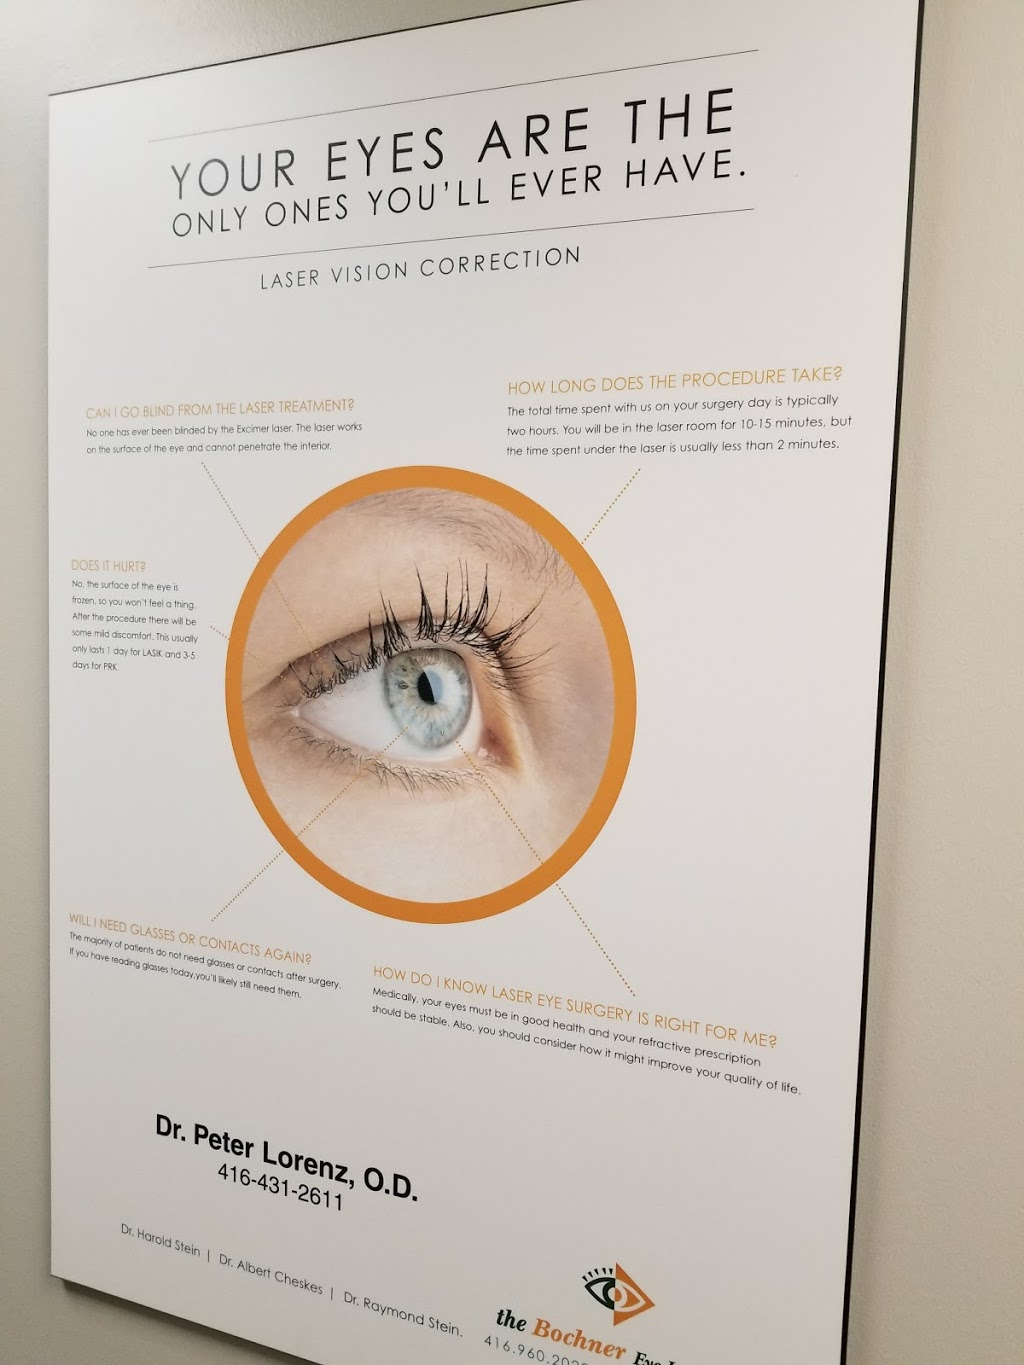 Cedarbrae Eye Doctors | doctor | Cedarbrae Mall, 3495 Lawrence Ave E Suite #212B, Scarborough, ON M1H 1B3, Canada | 4164312611 OR +1 416-431-2611